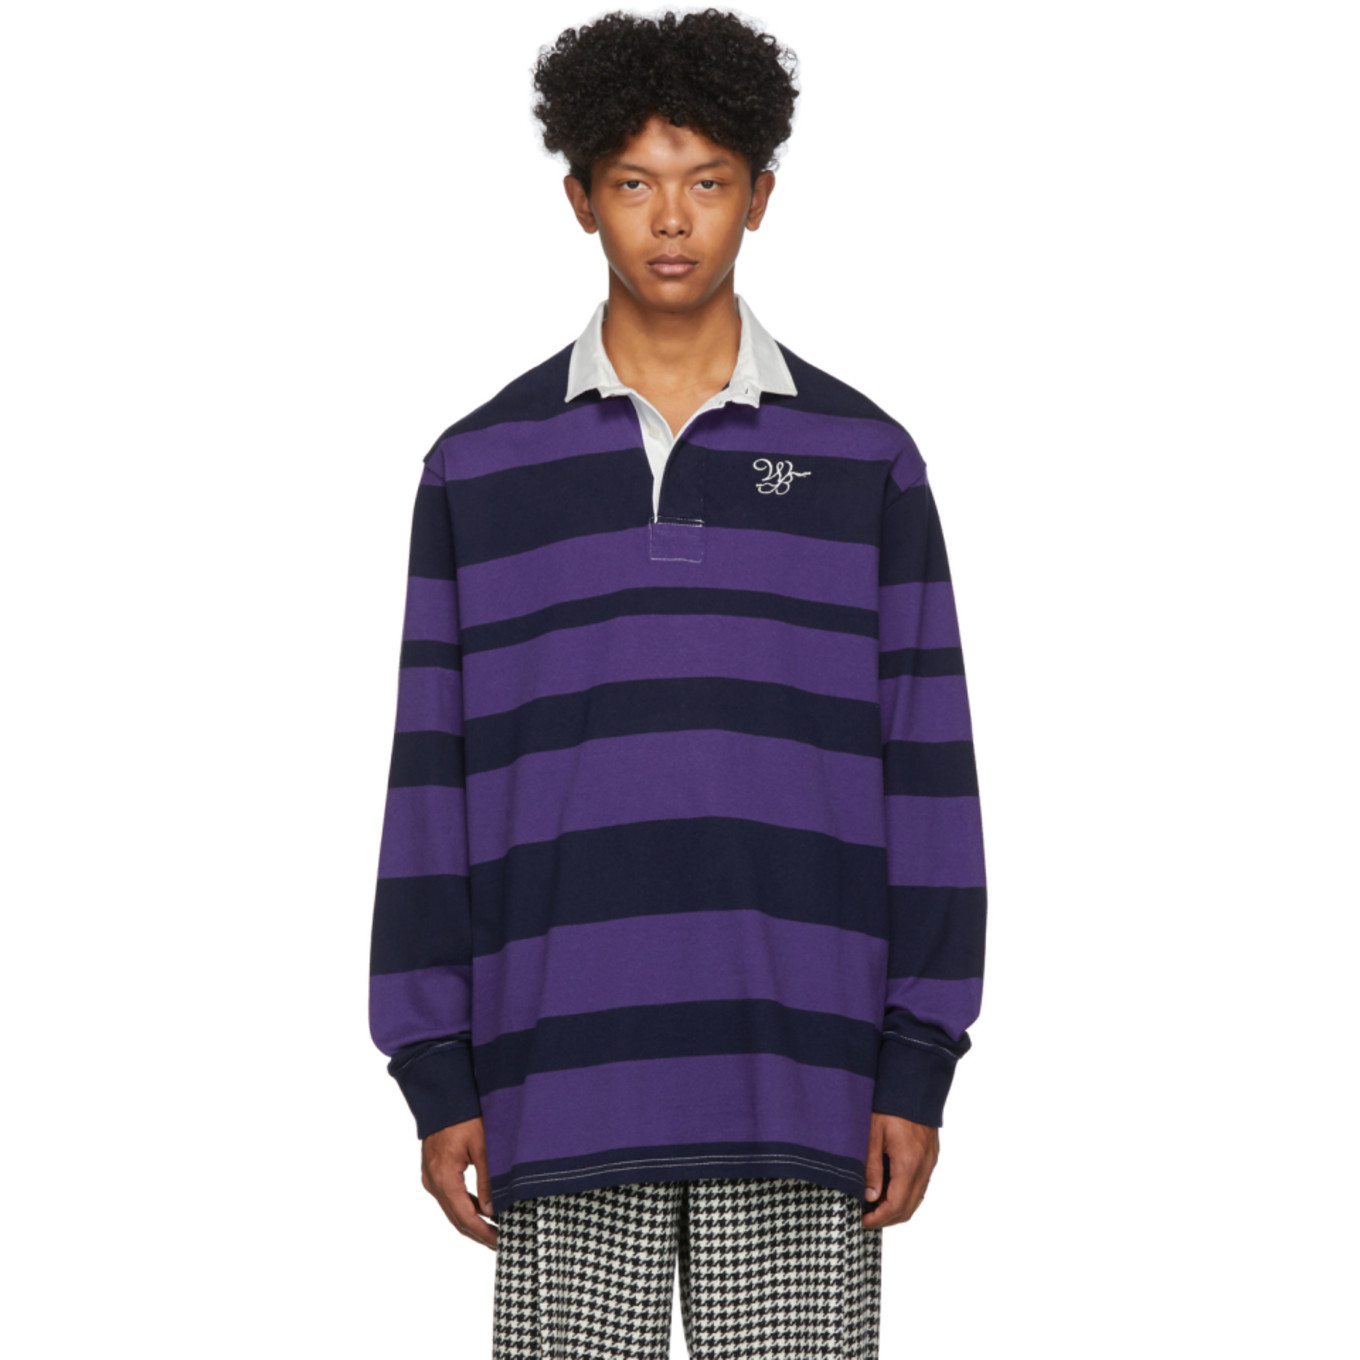 Navy & Purple Striped Rugby Polo by Wales Bonner